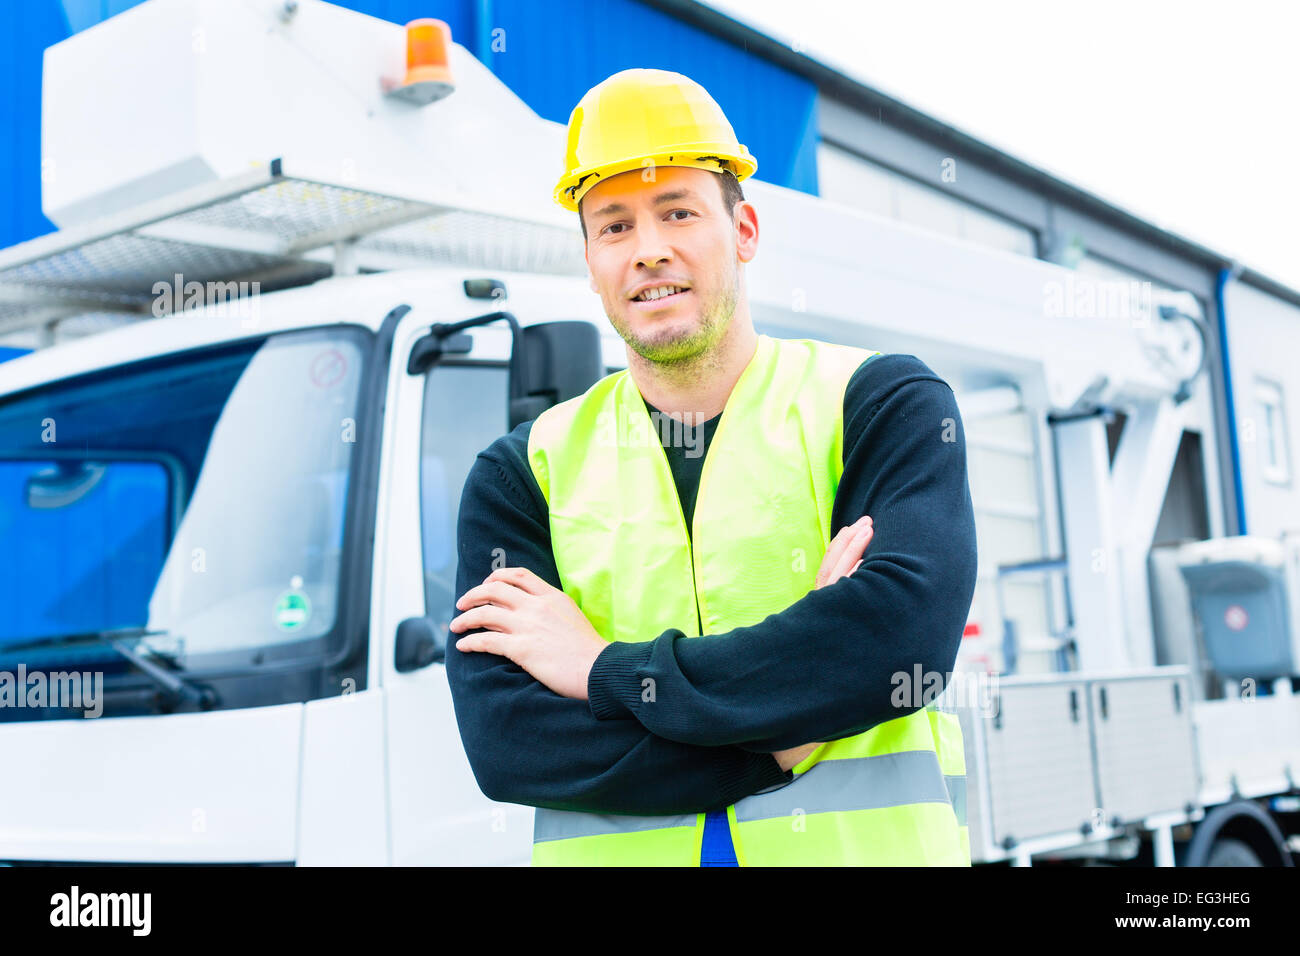 builder or driver standing in front of pallet transporter or lift